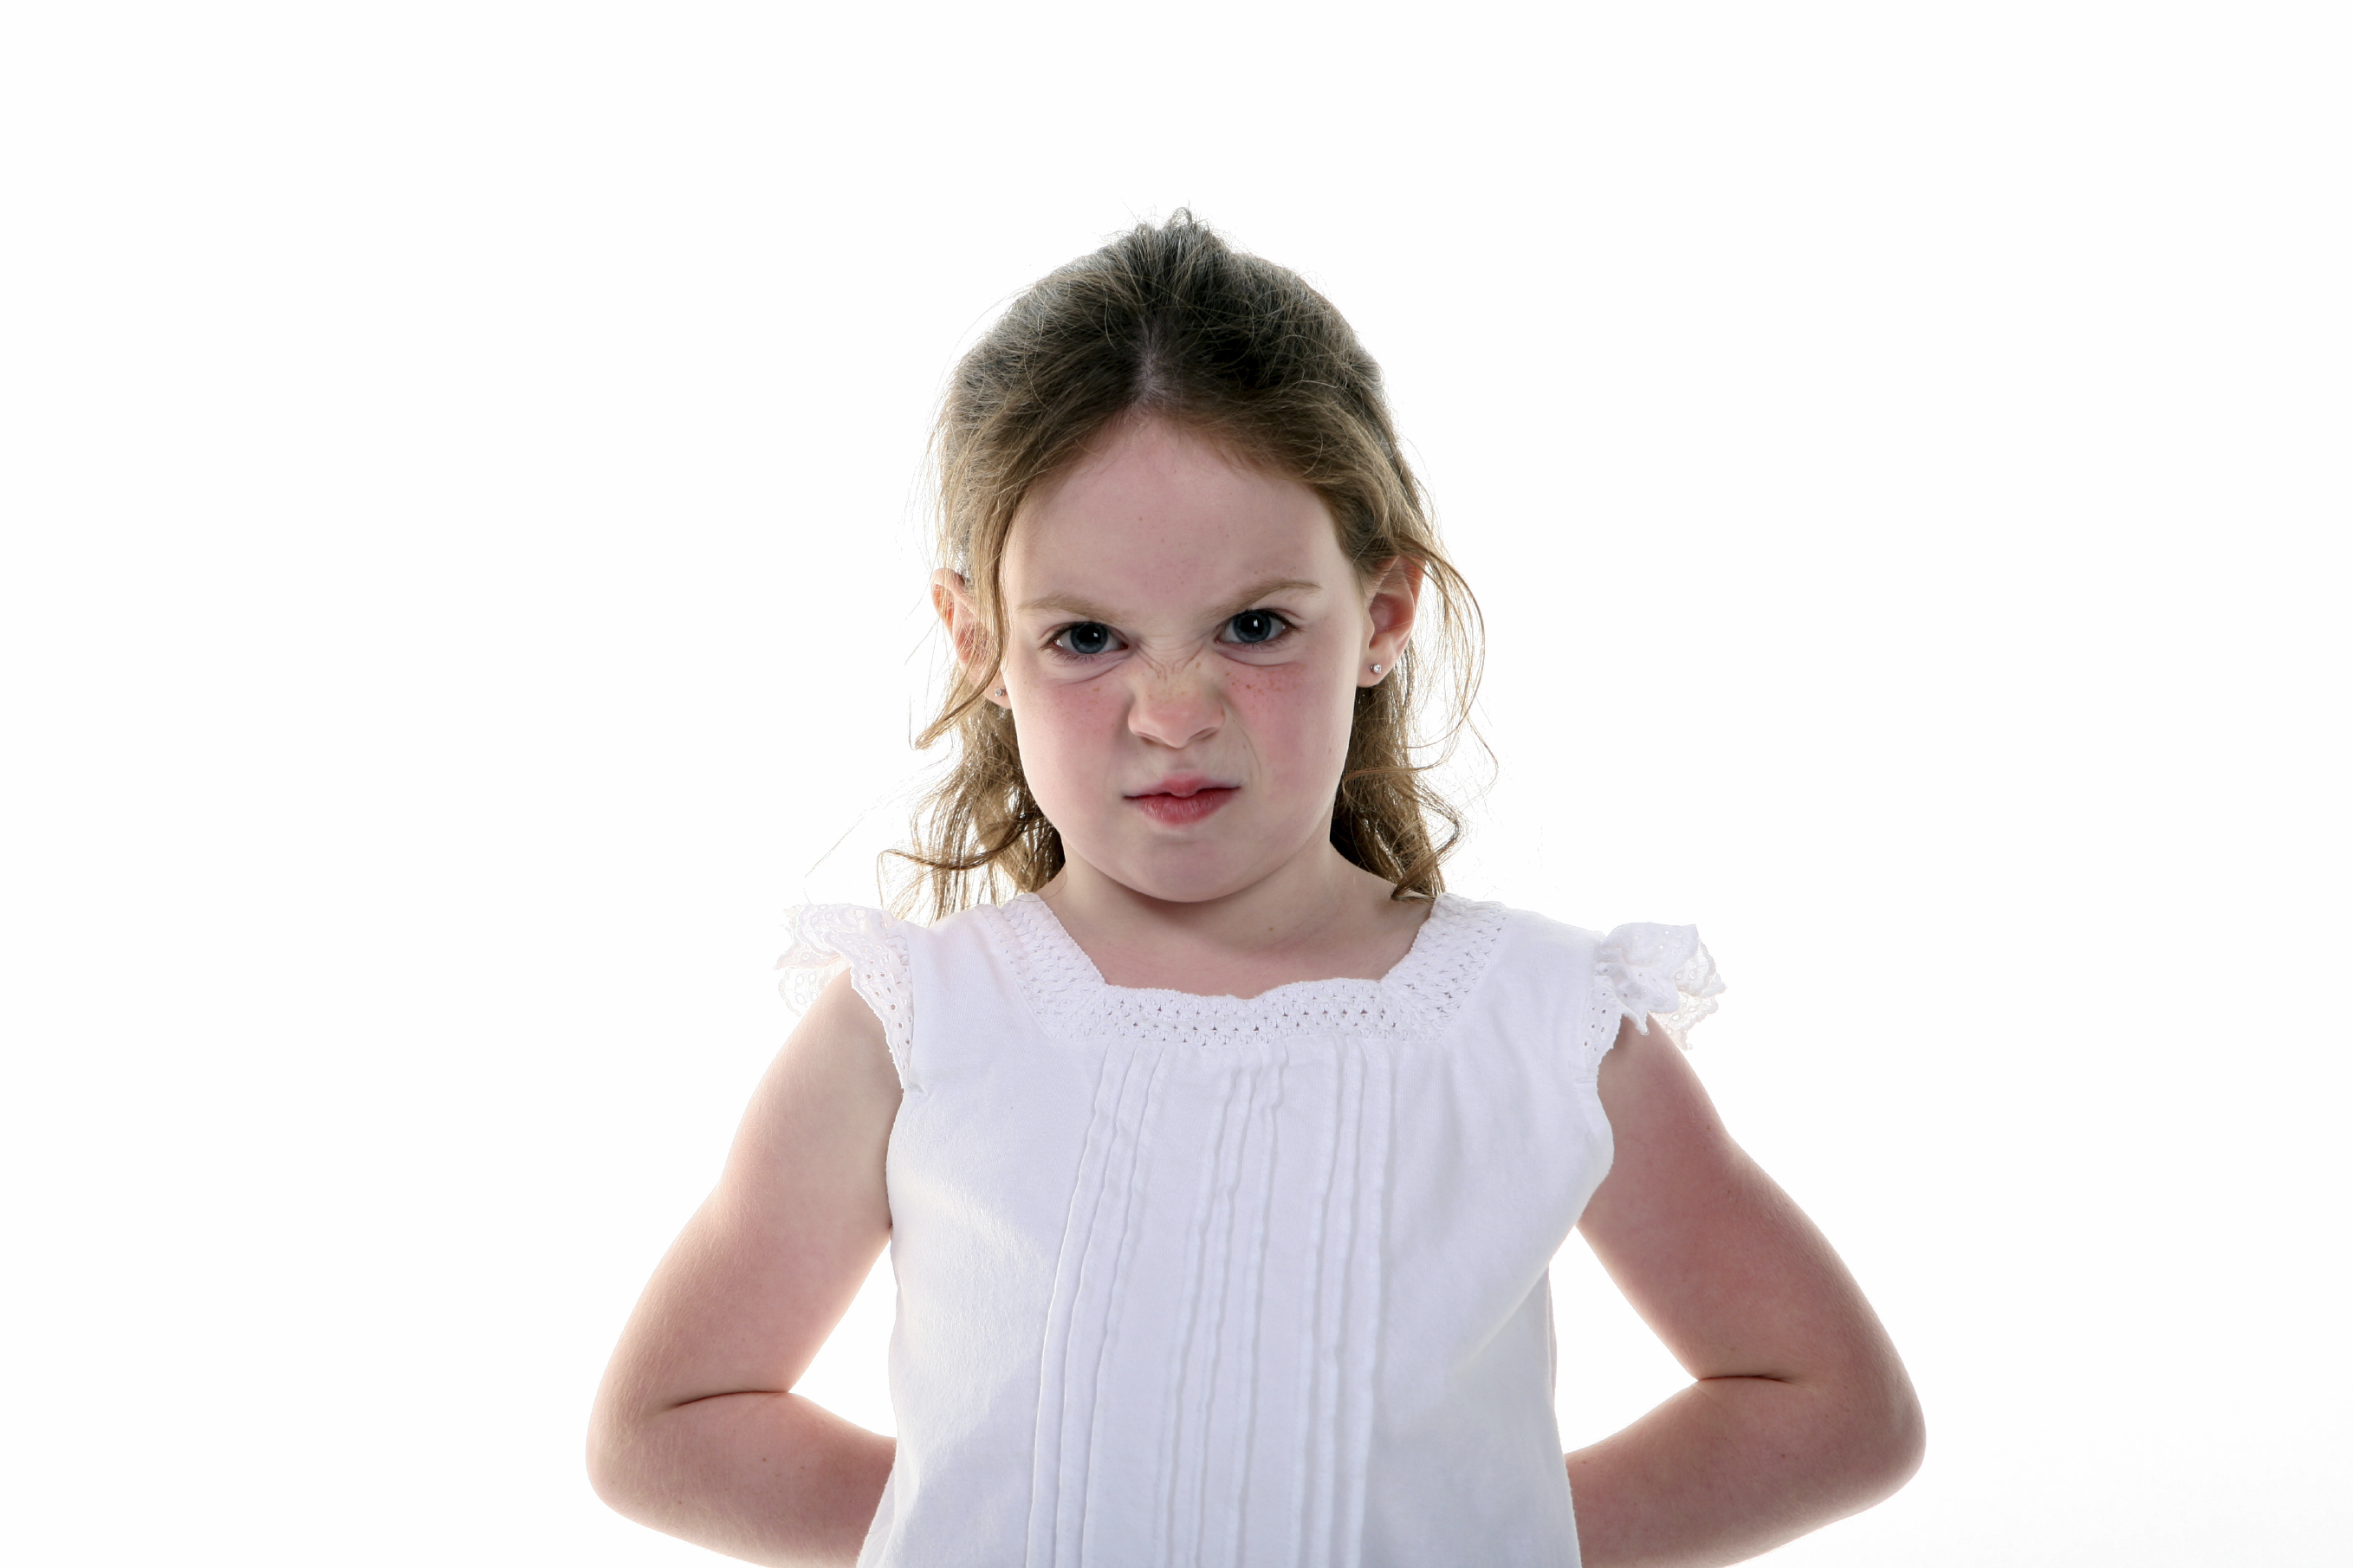 A very young girl with a bratty expression. (stock image)